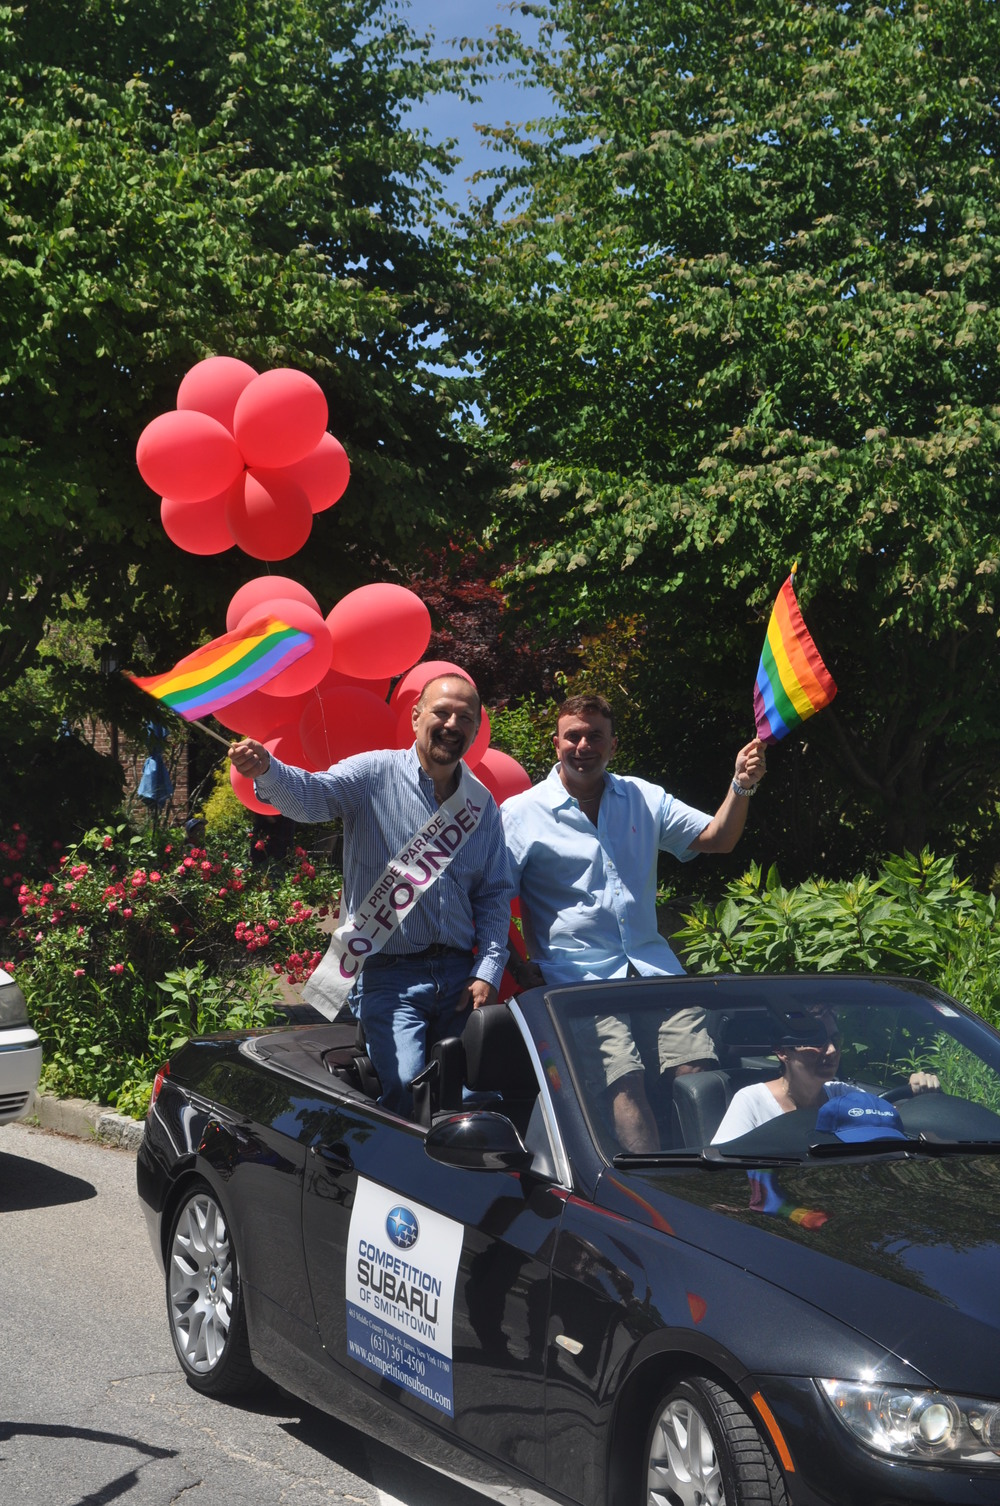 Long Island Pride Parade co-founders Steve Henaghan and David Kilmnick were grand marshals, as was fellow co-founder Jimmy Pizzo.